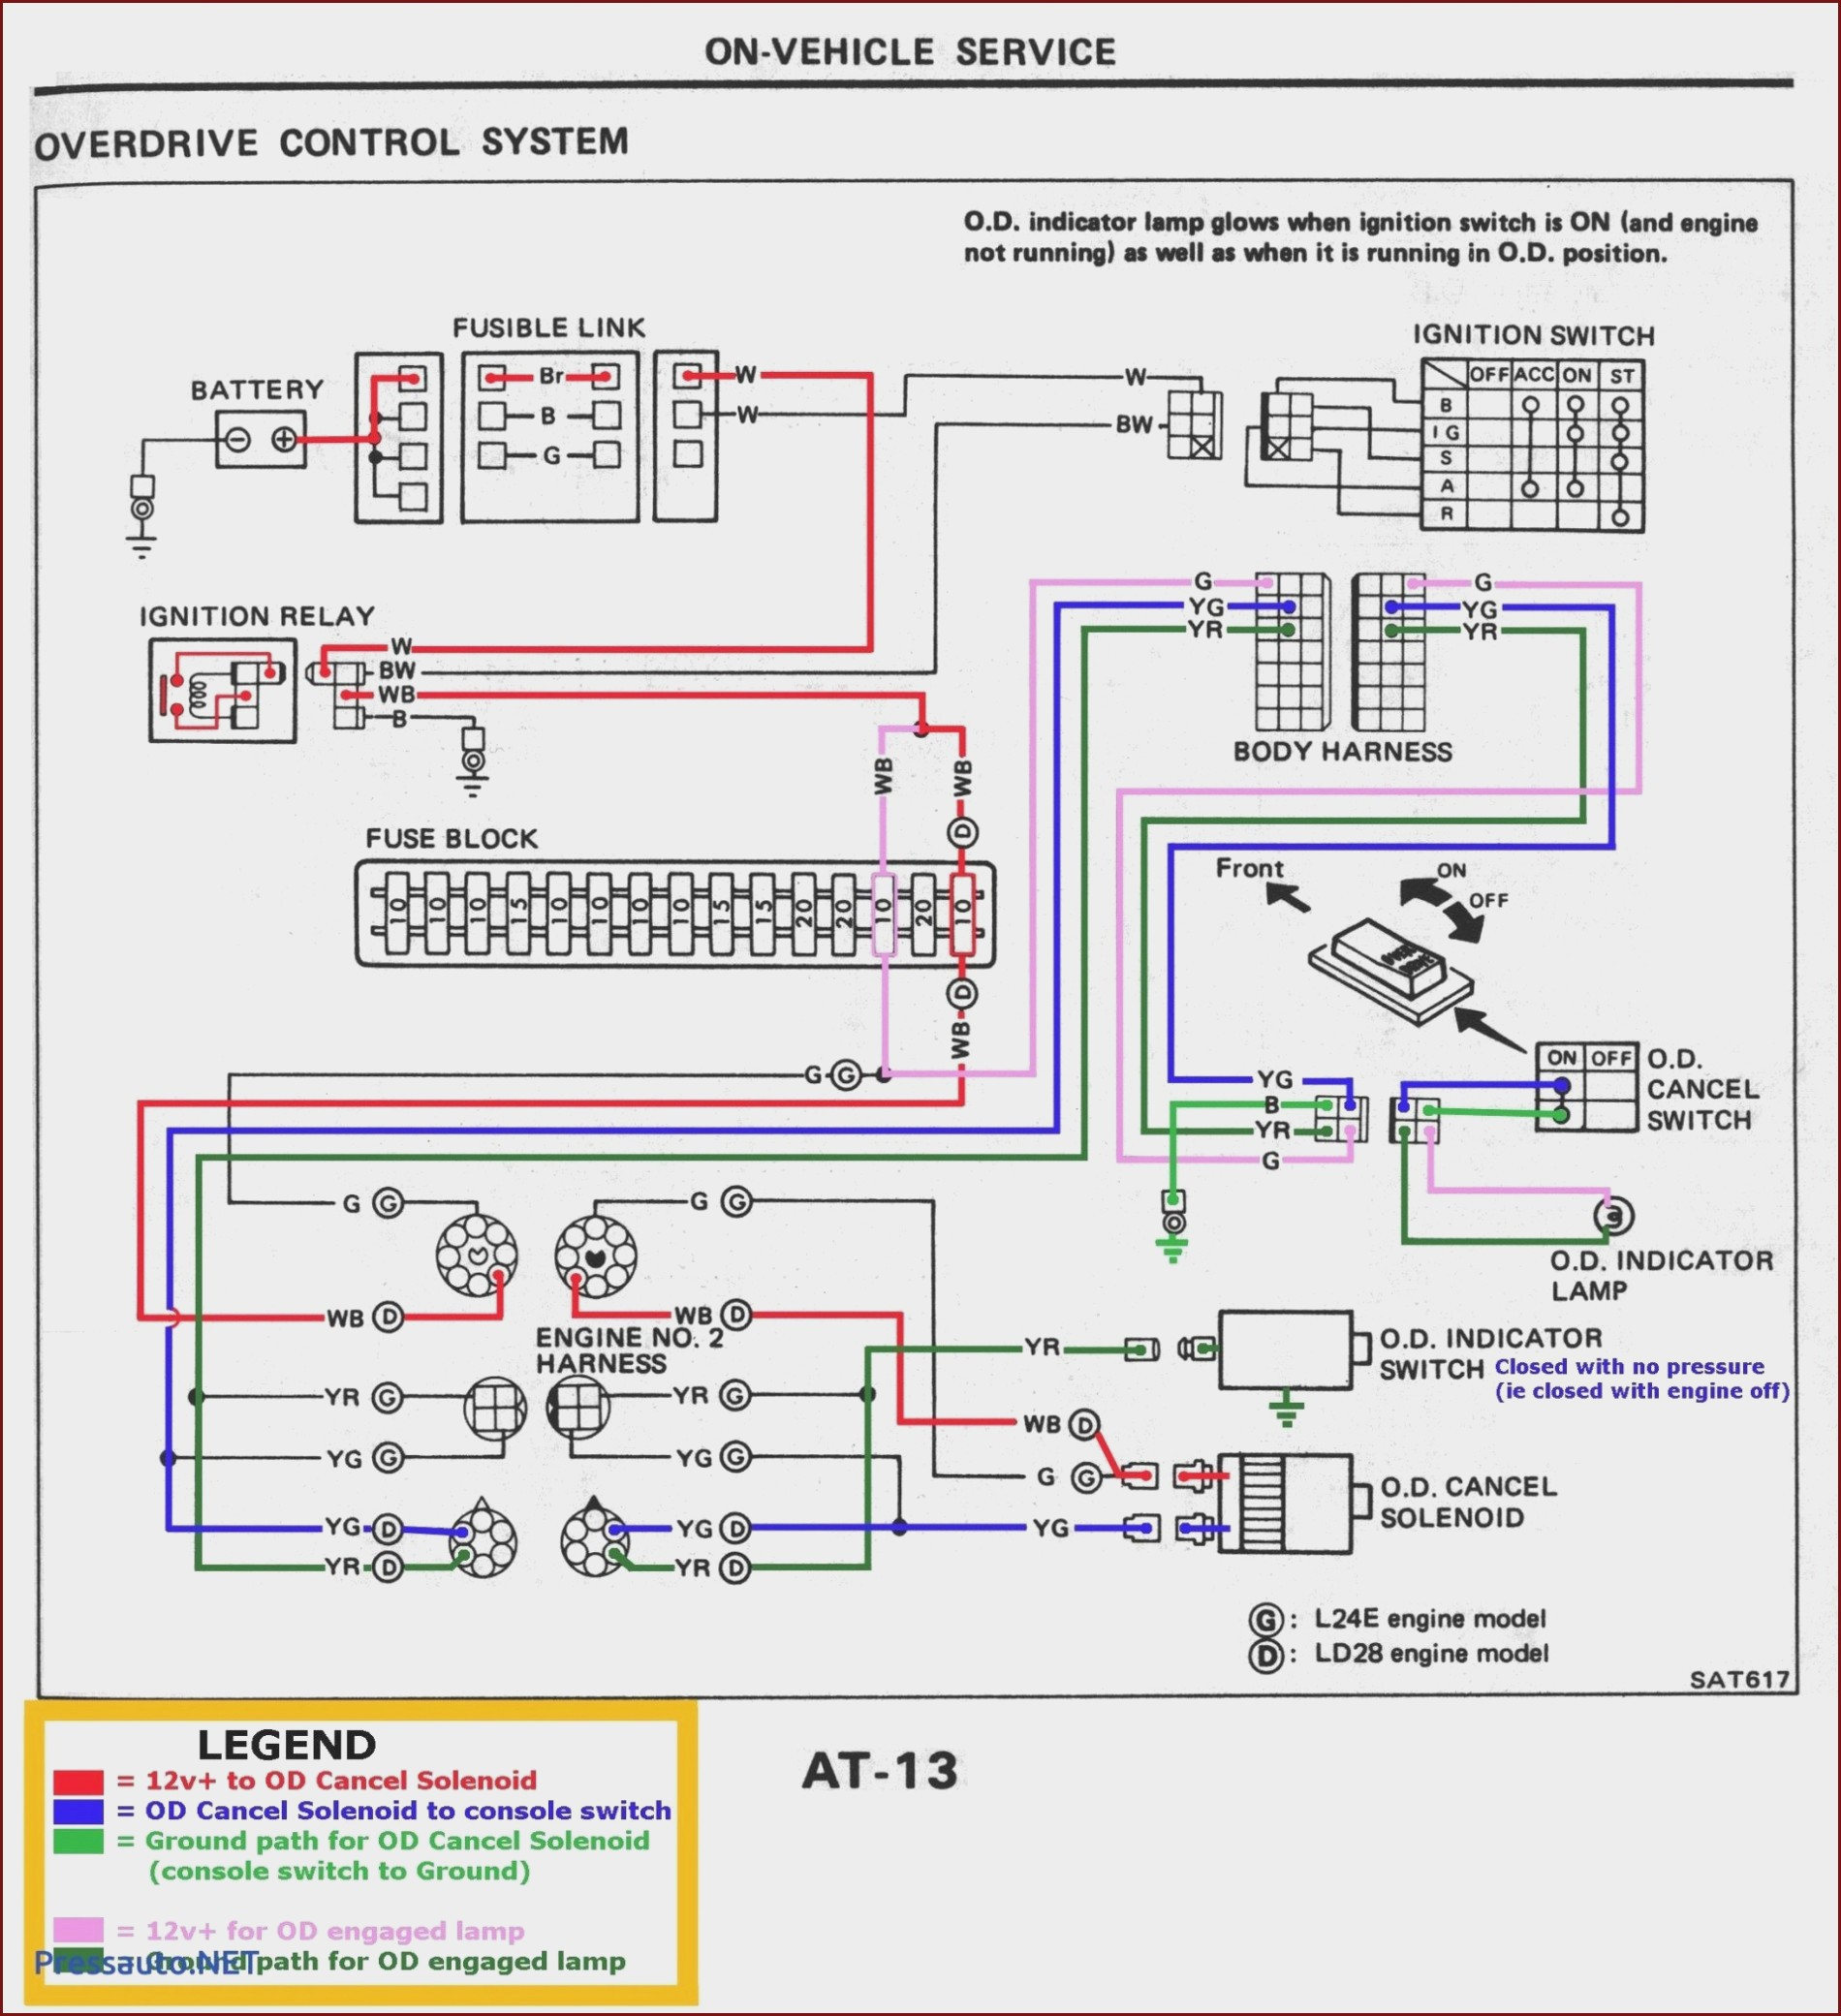 Genie Garage Door Sensor Wiring Diagram Omc E250 Fpxsif Wiring Diagram Wiring Diagram Options Of Genie Garage Door Sensor Wiring Diagram Omc E250 Fpxsif Wiring Diagram Wiring Diagram Options